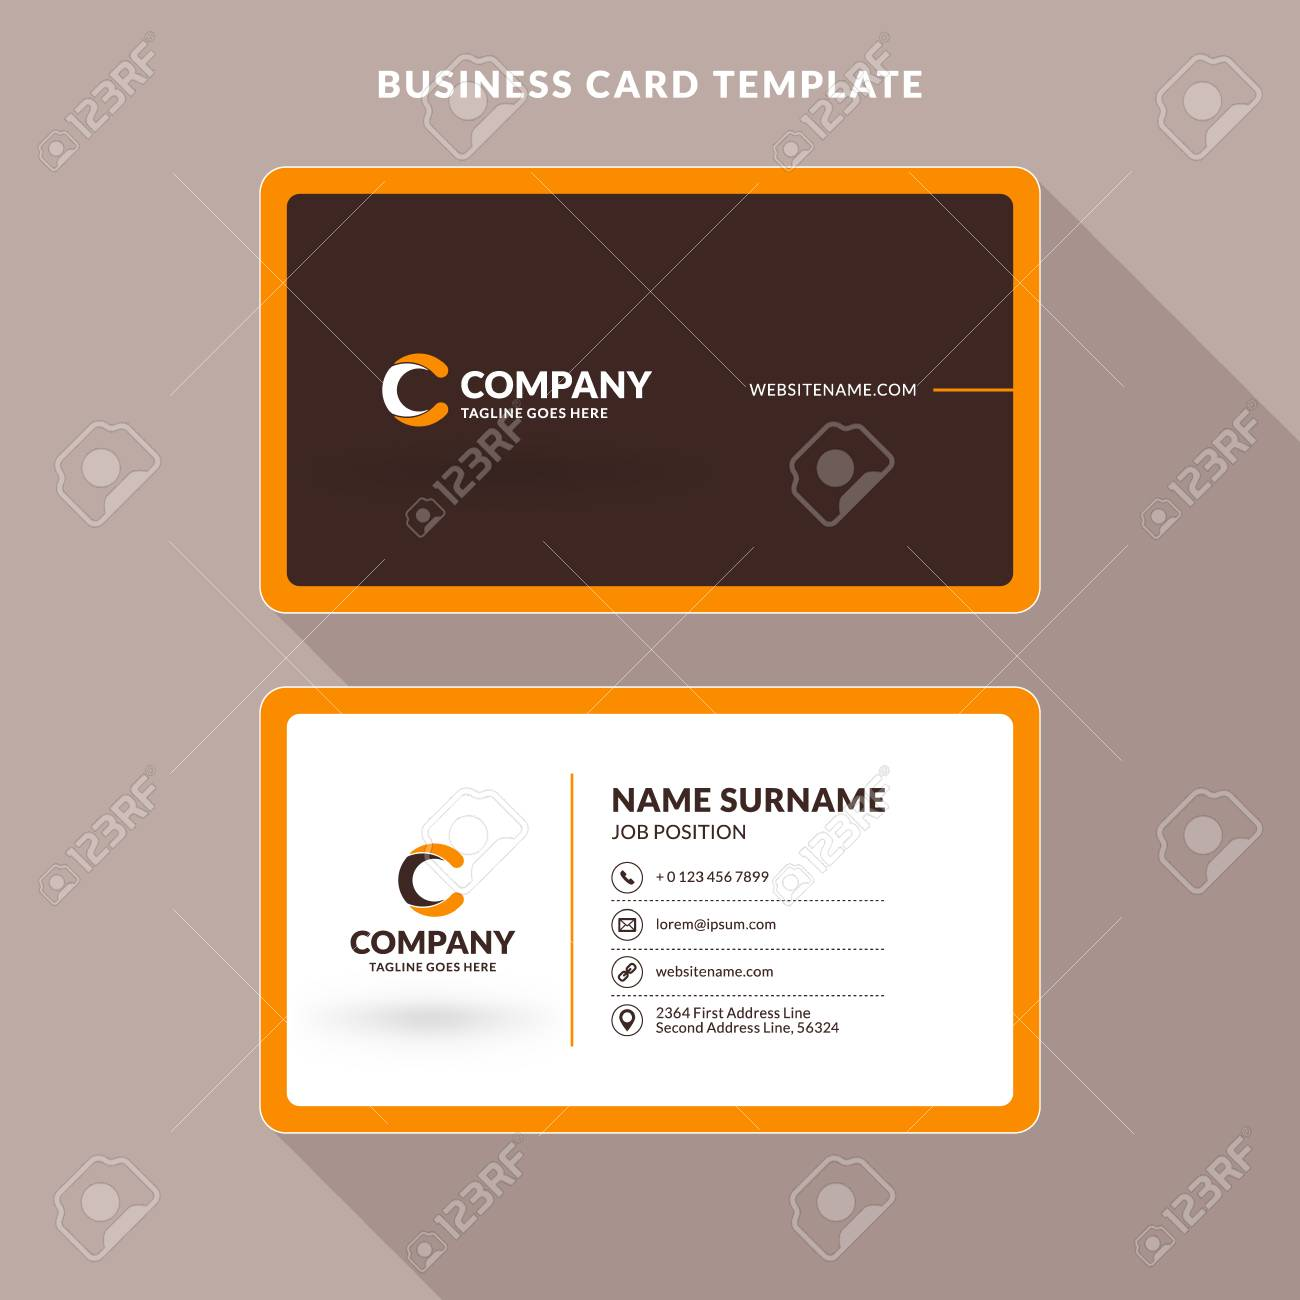 Creative and clean double sided business card template orange creative and clean double sided business card template orange and brown colors flat cheaphphosting Images